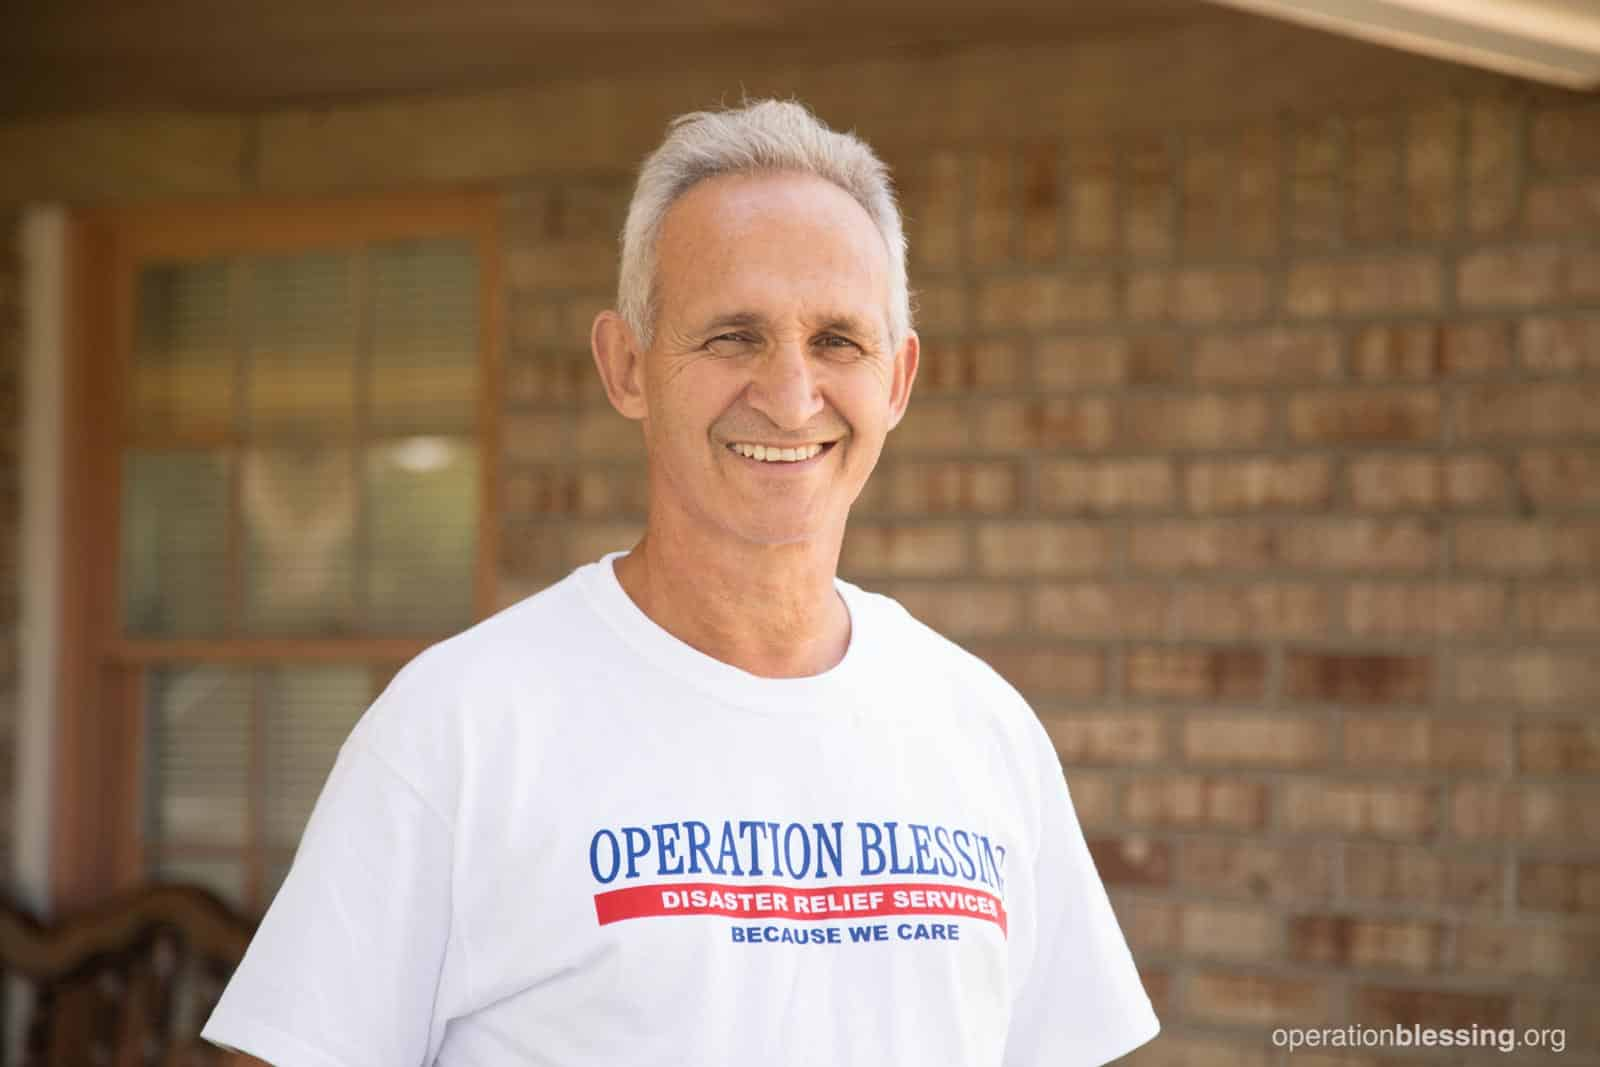 Randy smiles, thankful for the opportunity to offer volunteer help to those in need.